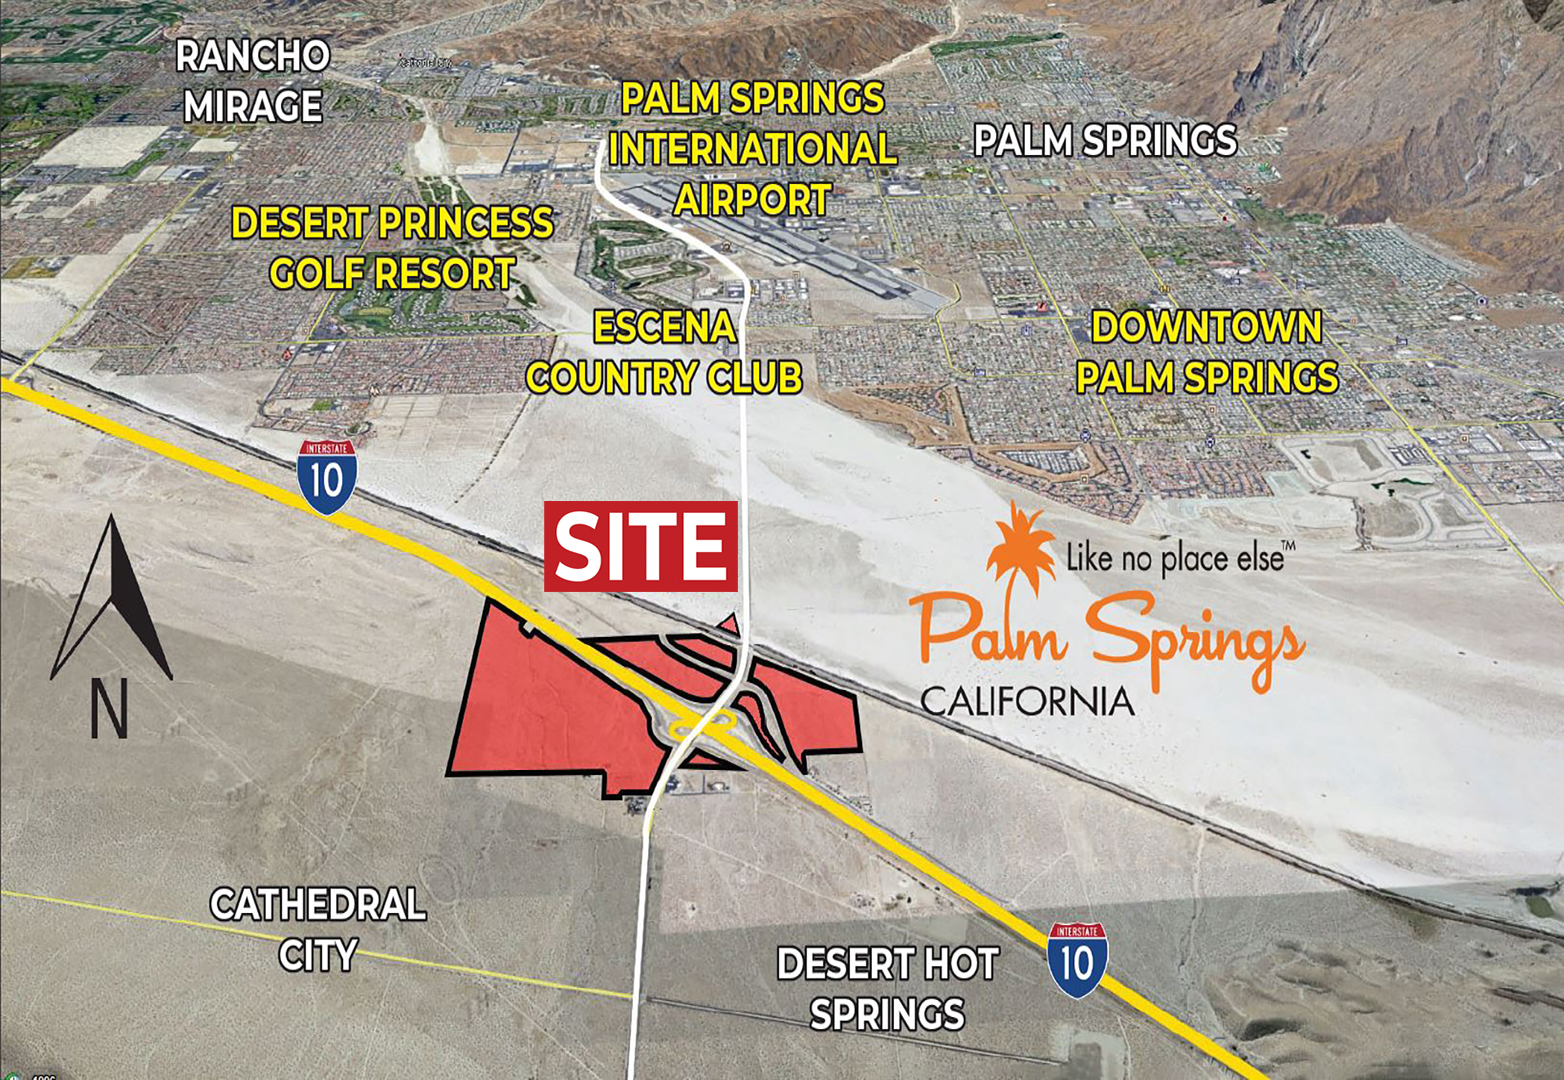 246.4 AC I-10 & Palm Dr, PS Featured Web